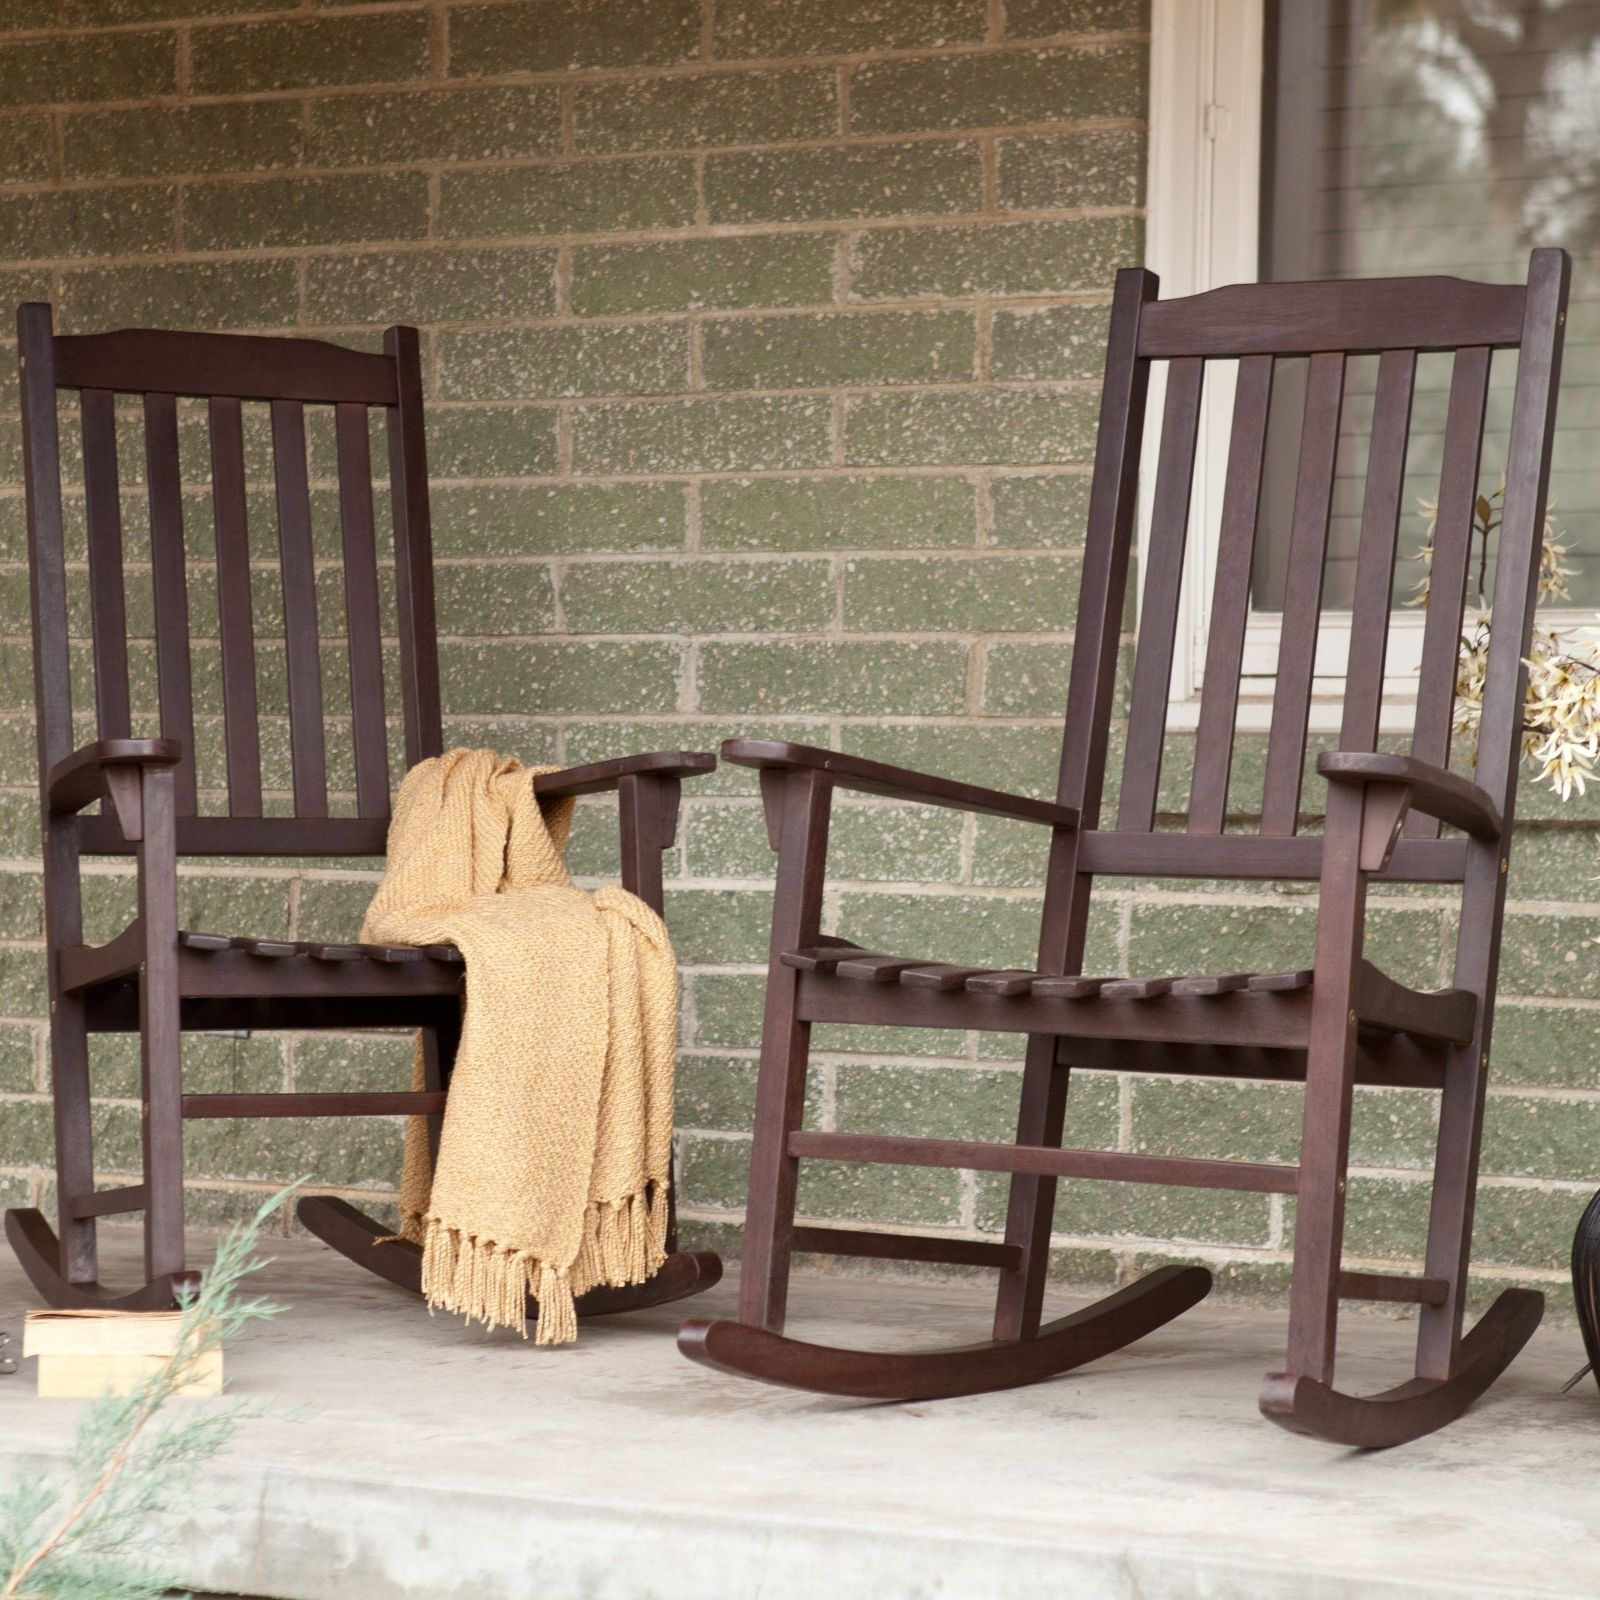 Chairs: Fancy Outdoor Rocking Chair For Your Outdoor Space Regarding Patio Furniture Rocking Benches (View 6 of 15)